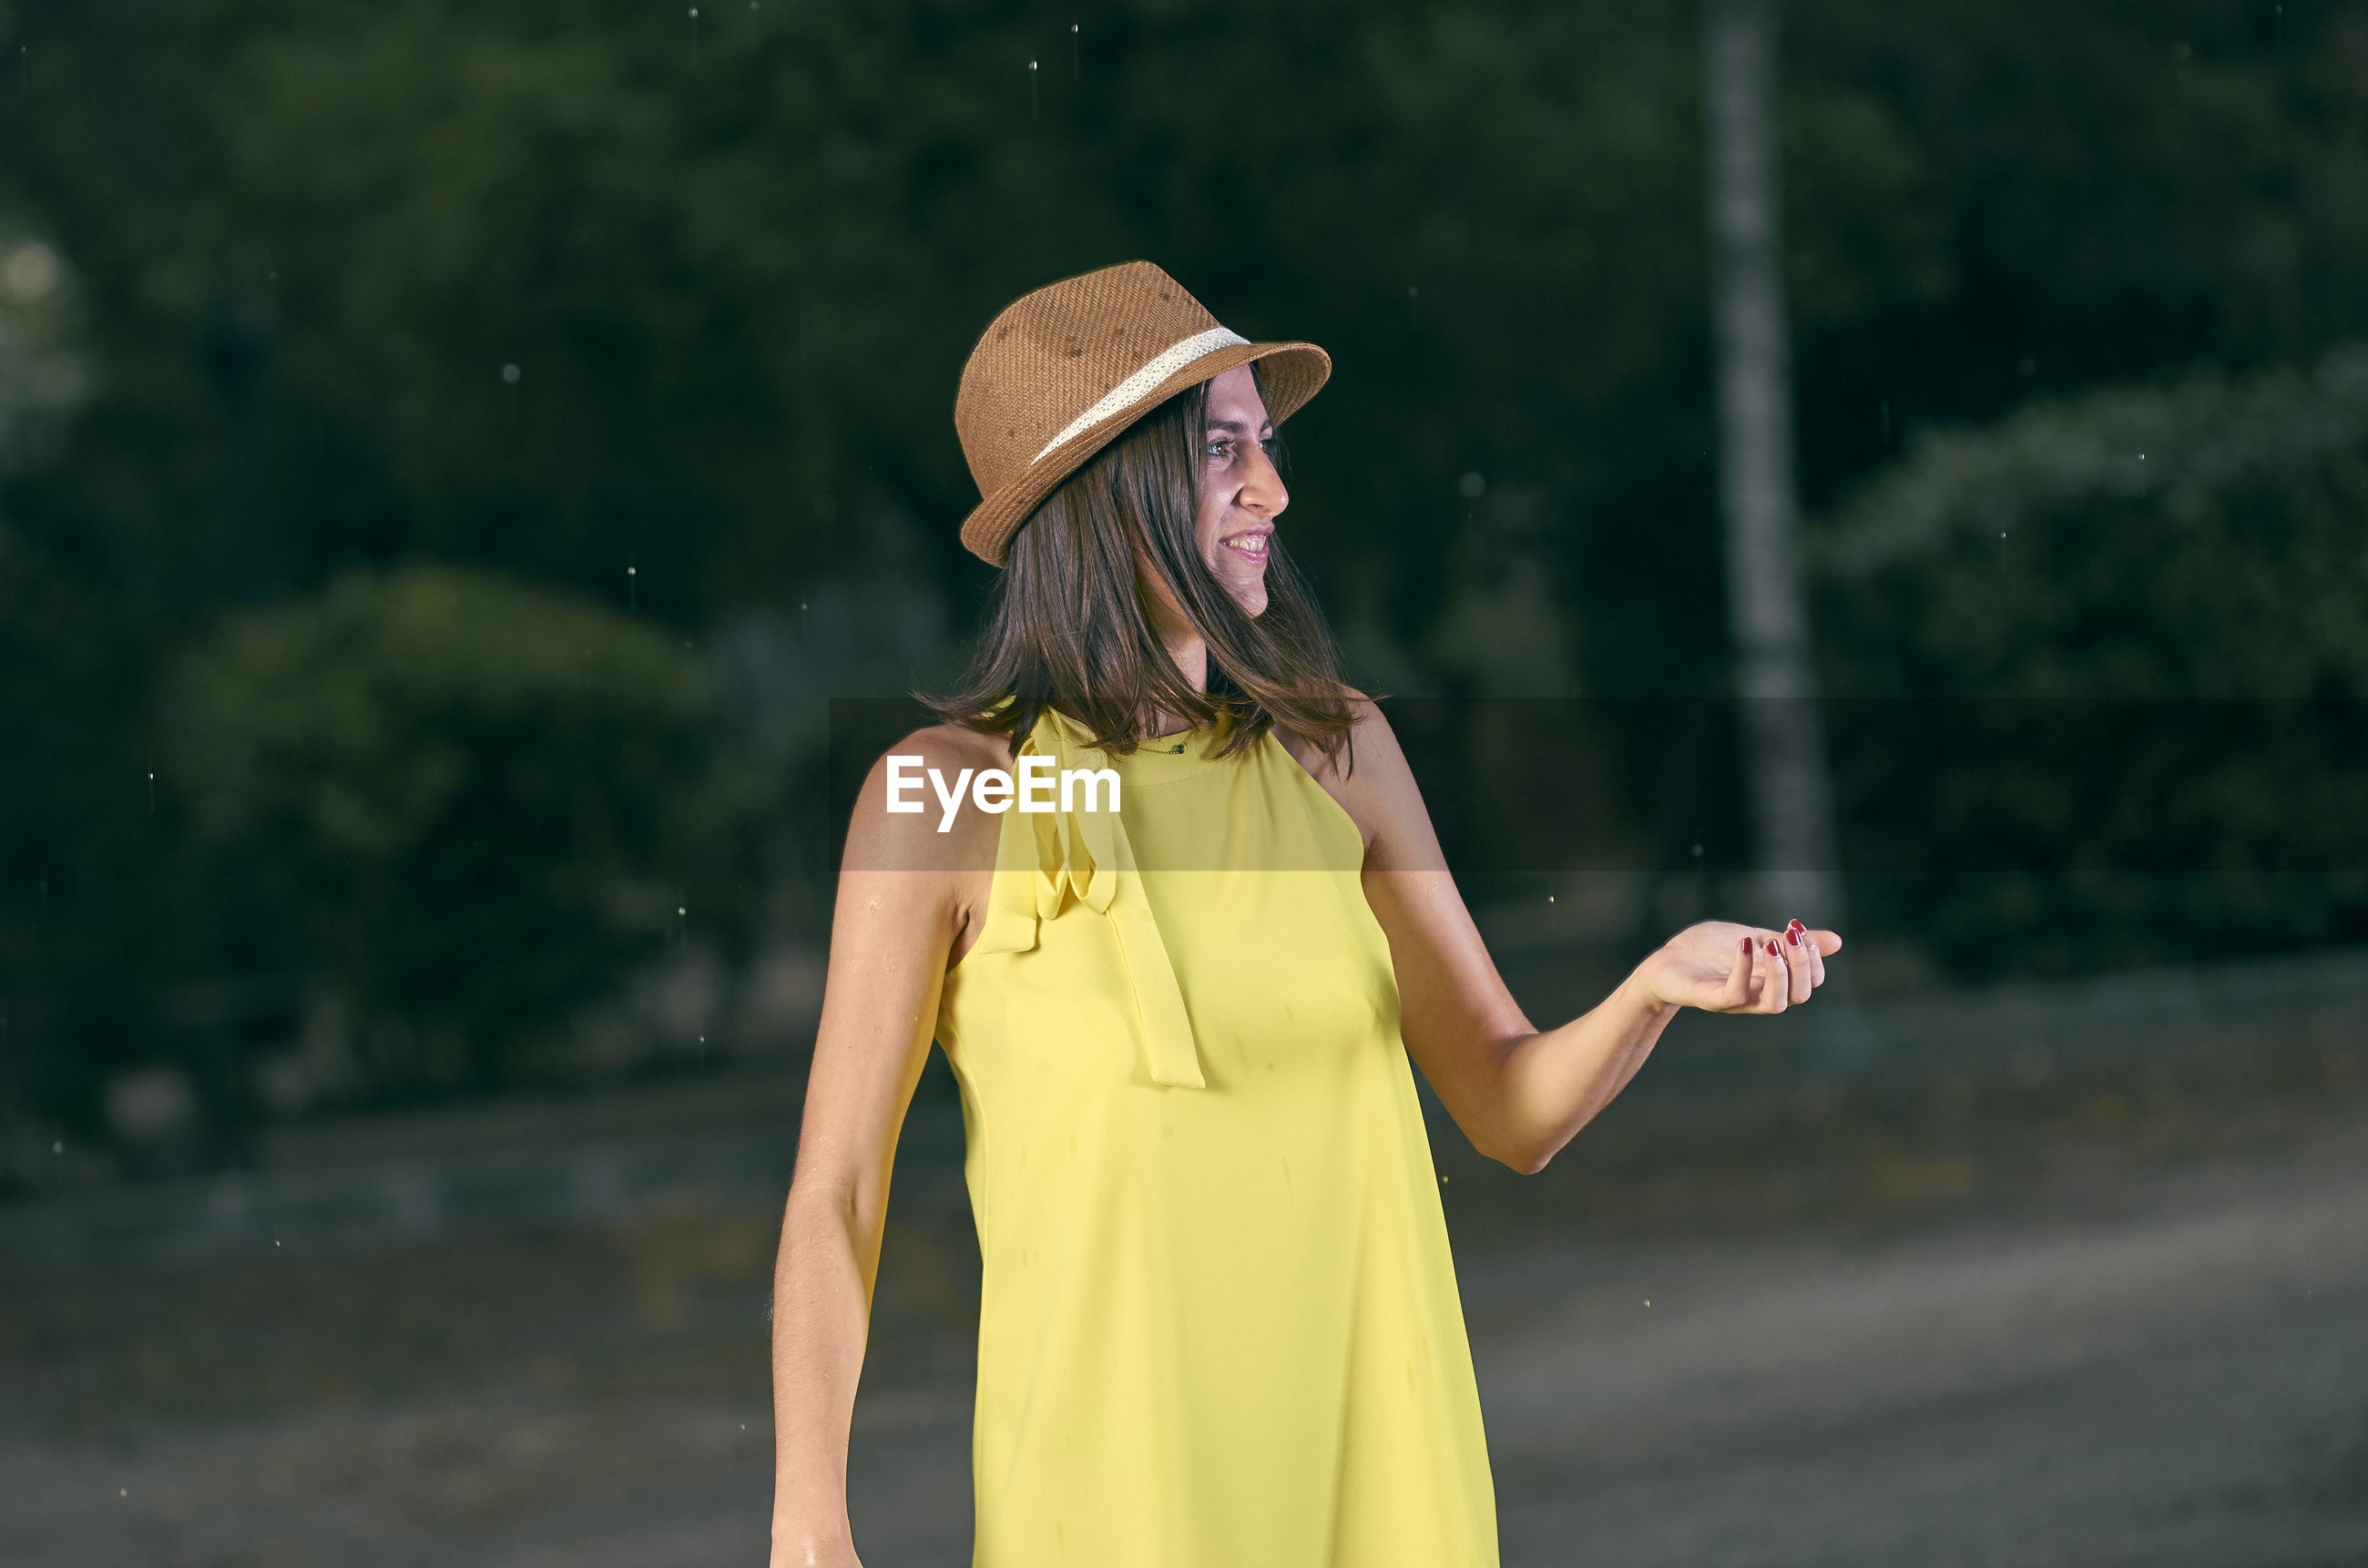 Woman wearing hat standing against trees on road